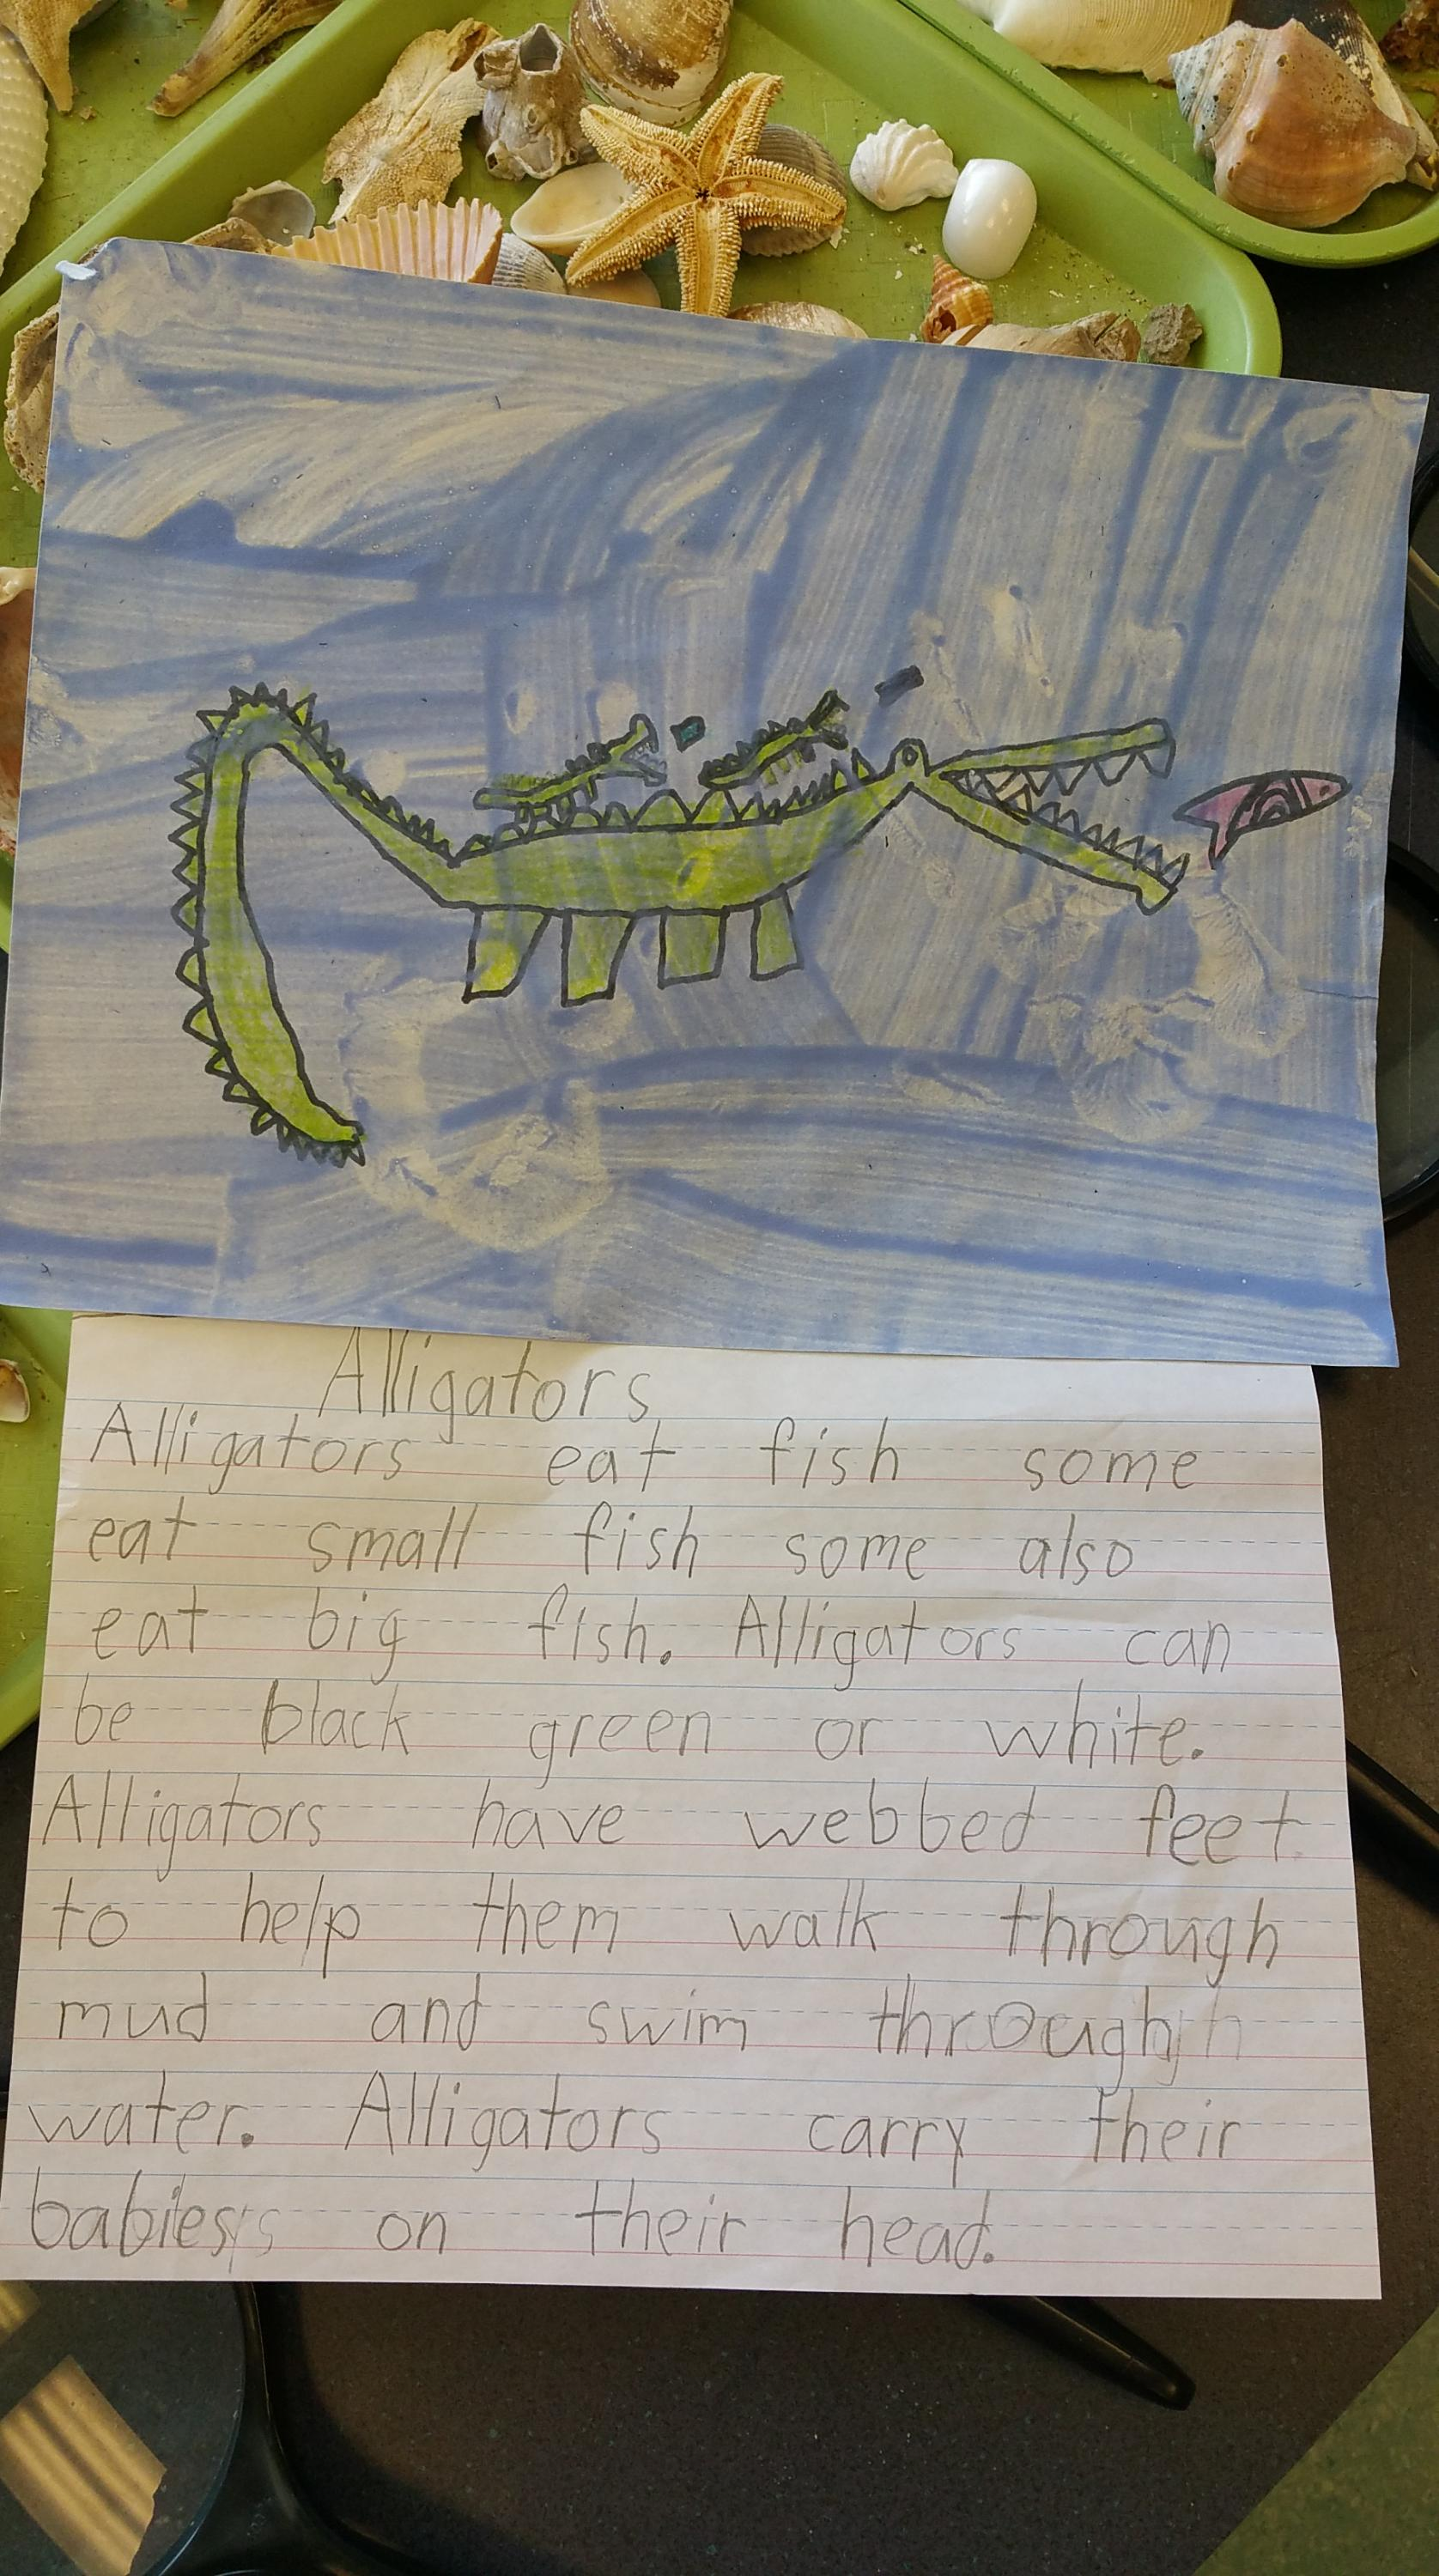 Written reports on the alligator, a native of estuaries.